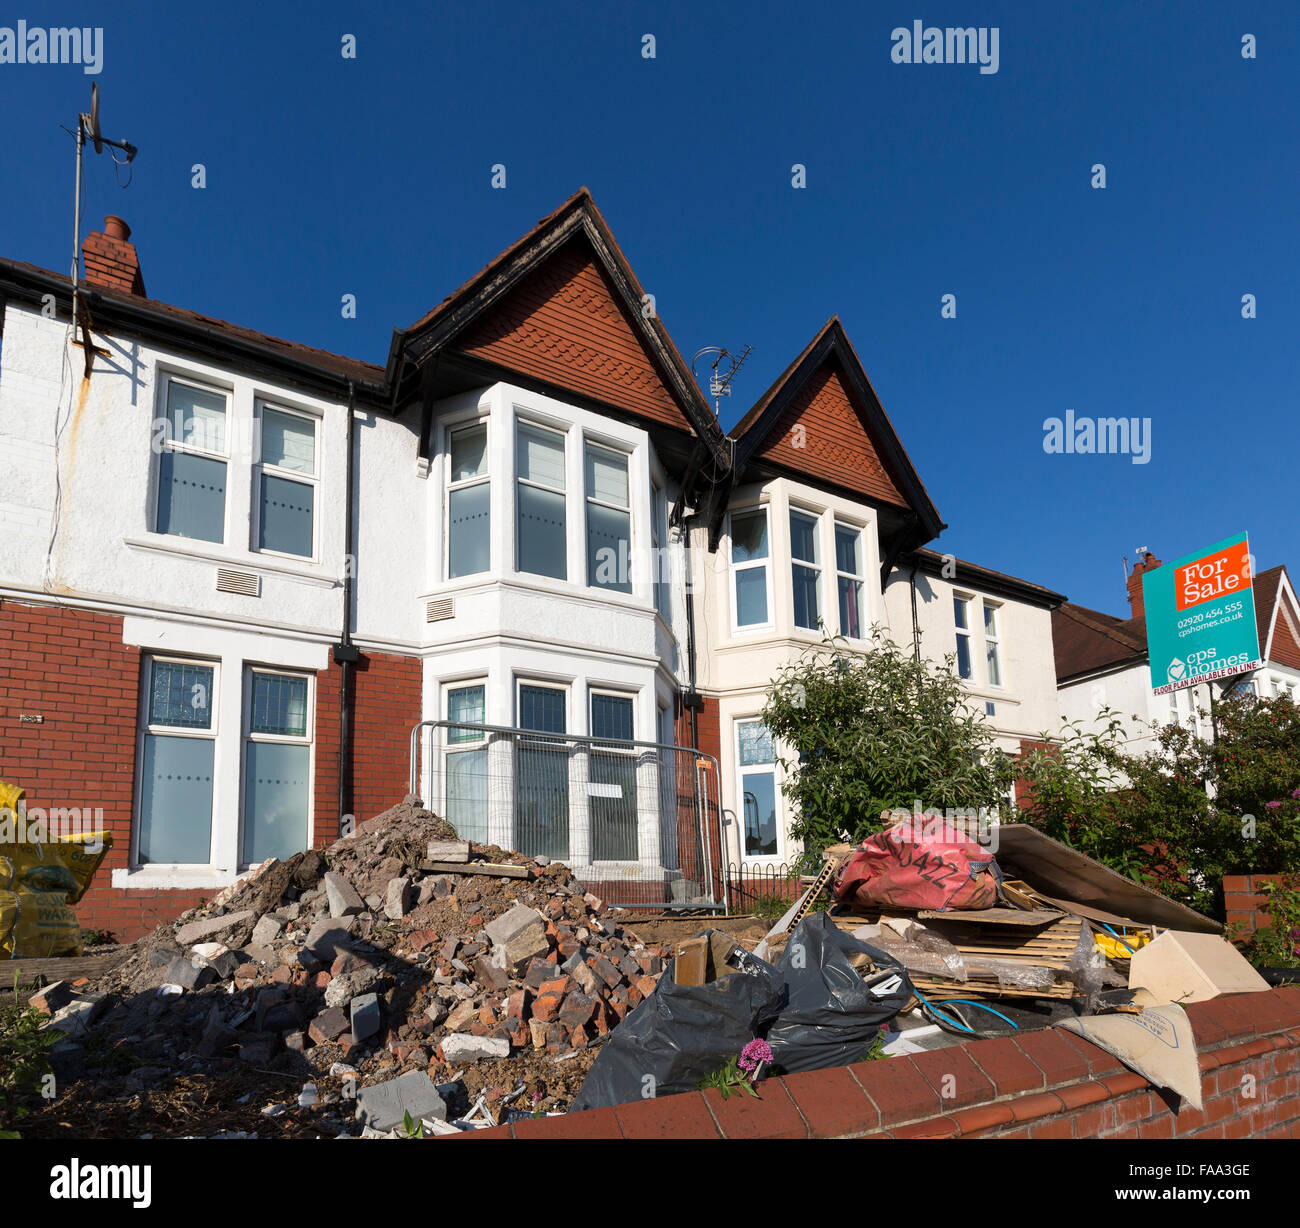 Building rubble from renovation in garden in front of house, Cardiff, Wales, UK - Stock Image